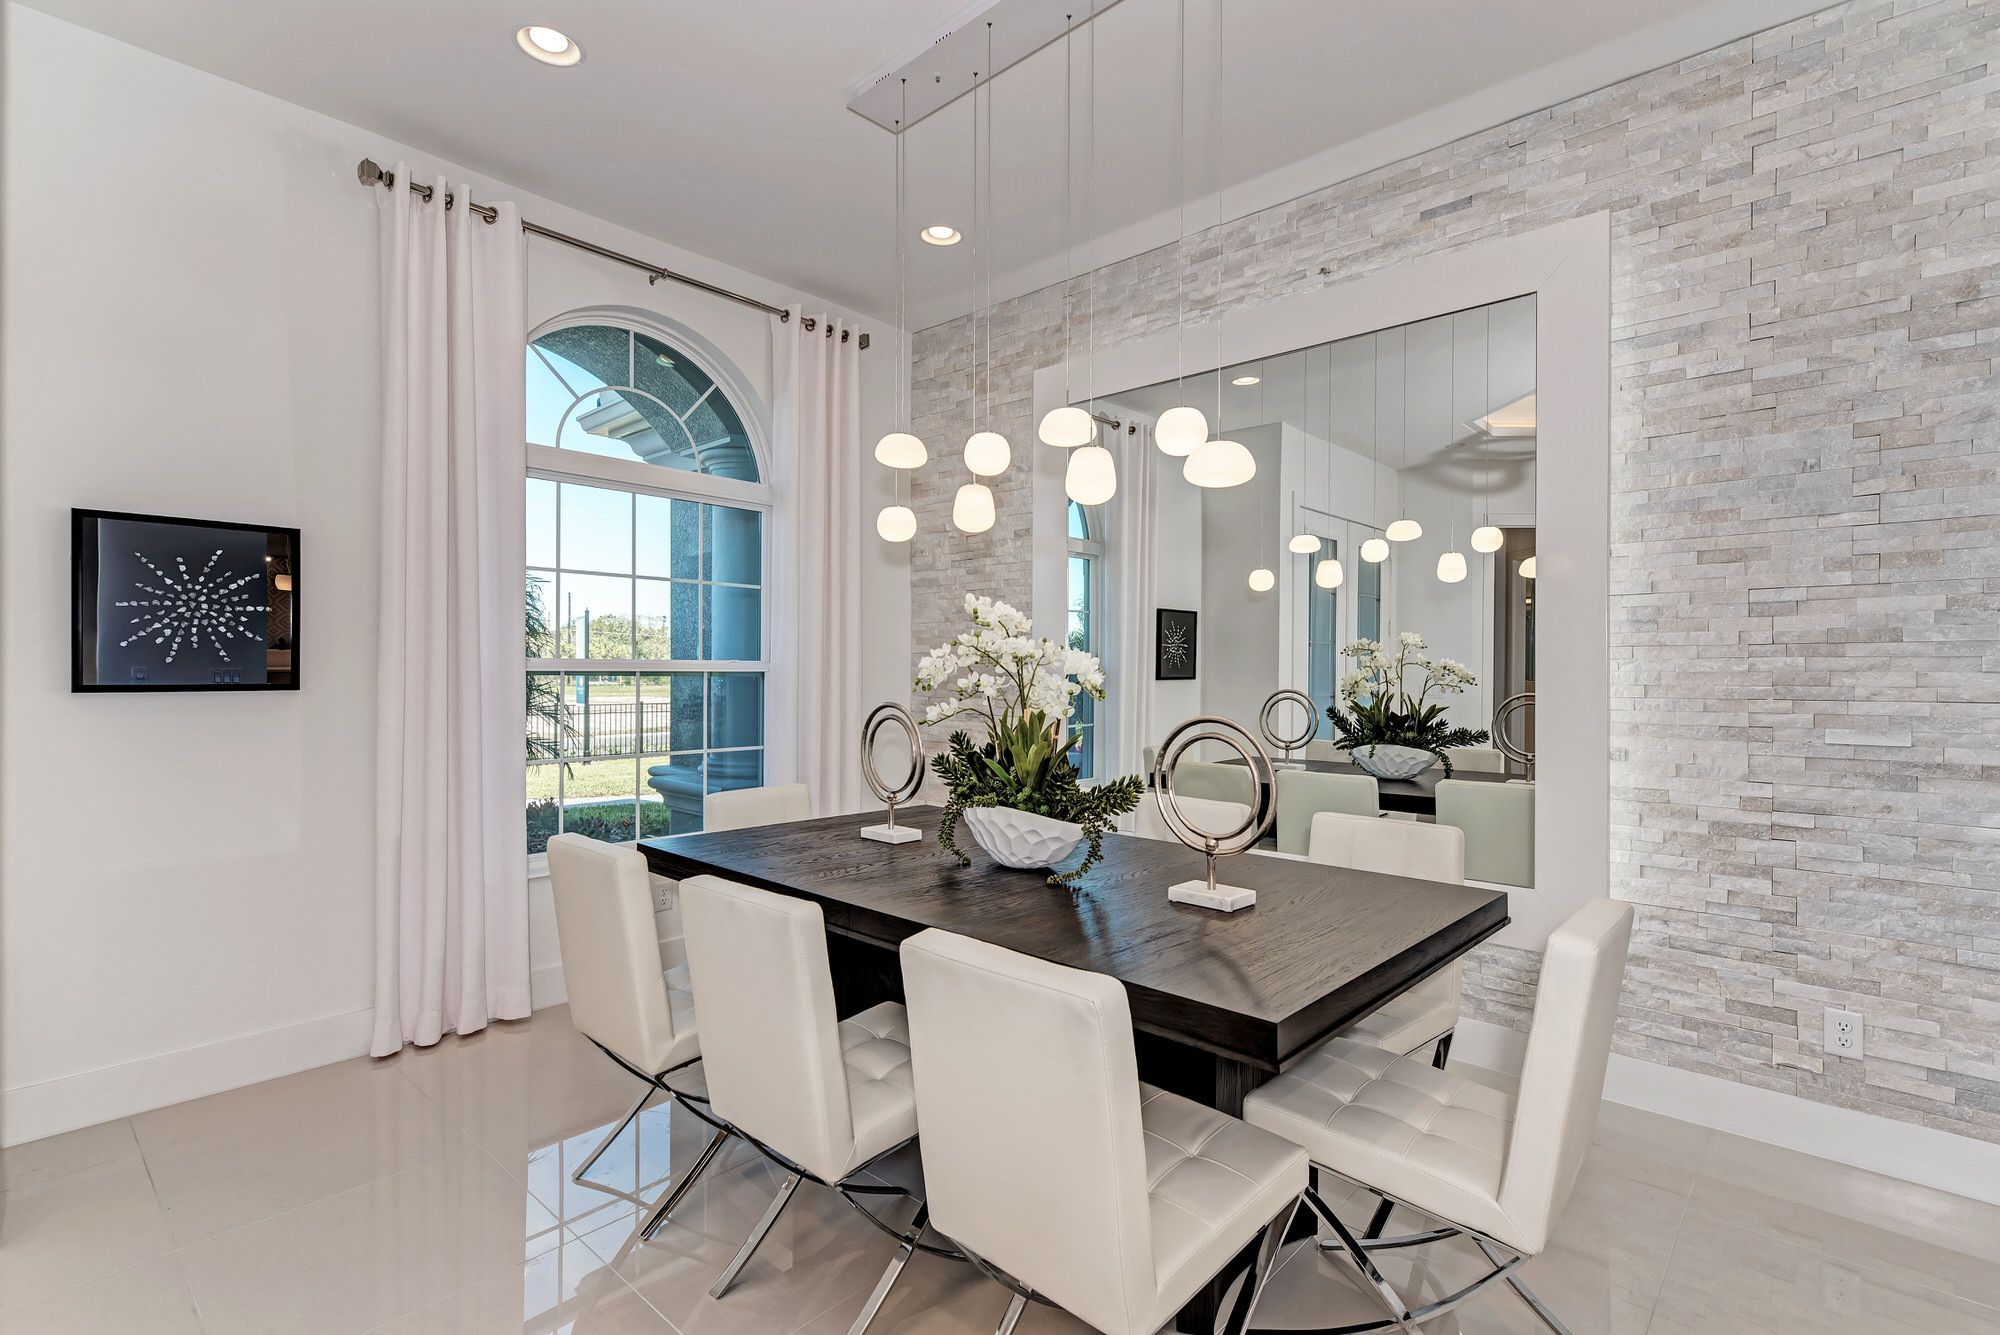 Living Area featured in the Barbados 2800-The Reserve By Medallion Home in Sarasota-Bradenton, FL